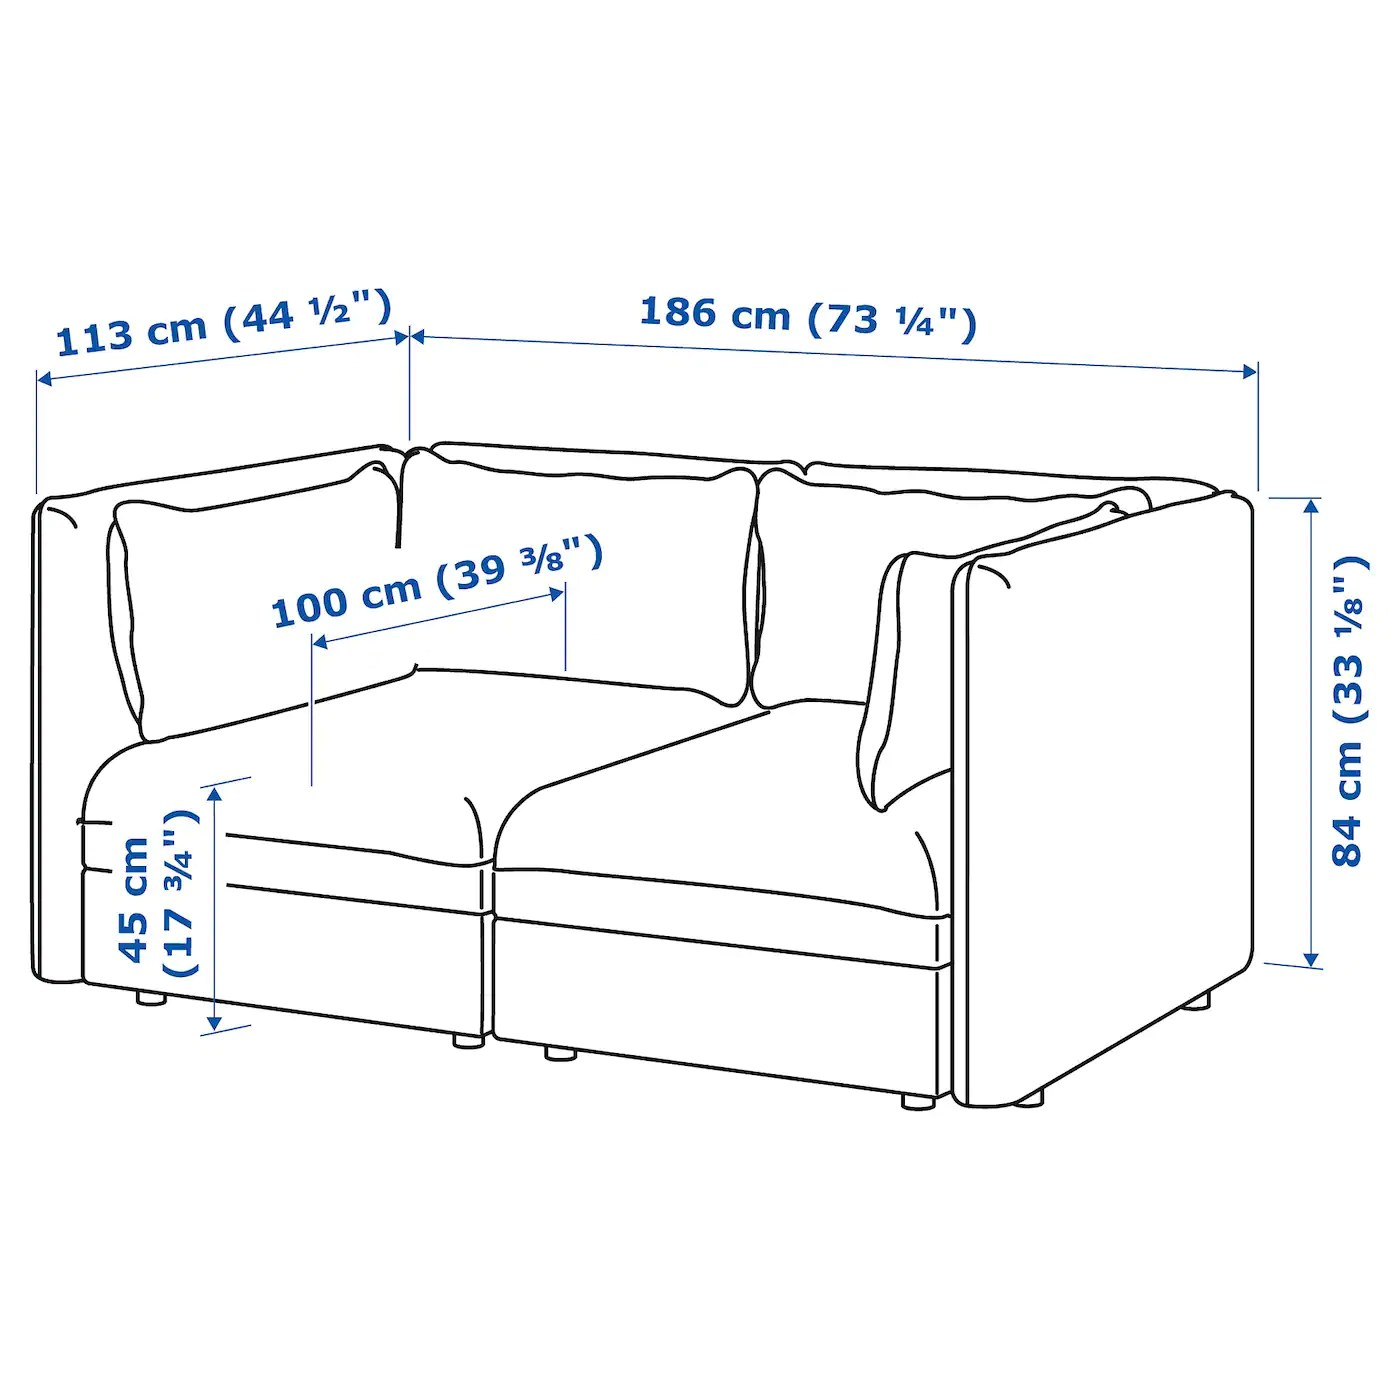 Sofa 2 Sitzer Ikea Buy Vallentuna 2-seat Modular Sofa - Orrsta Light Grey Online - Ikea